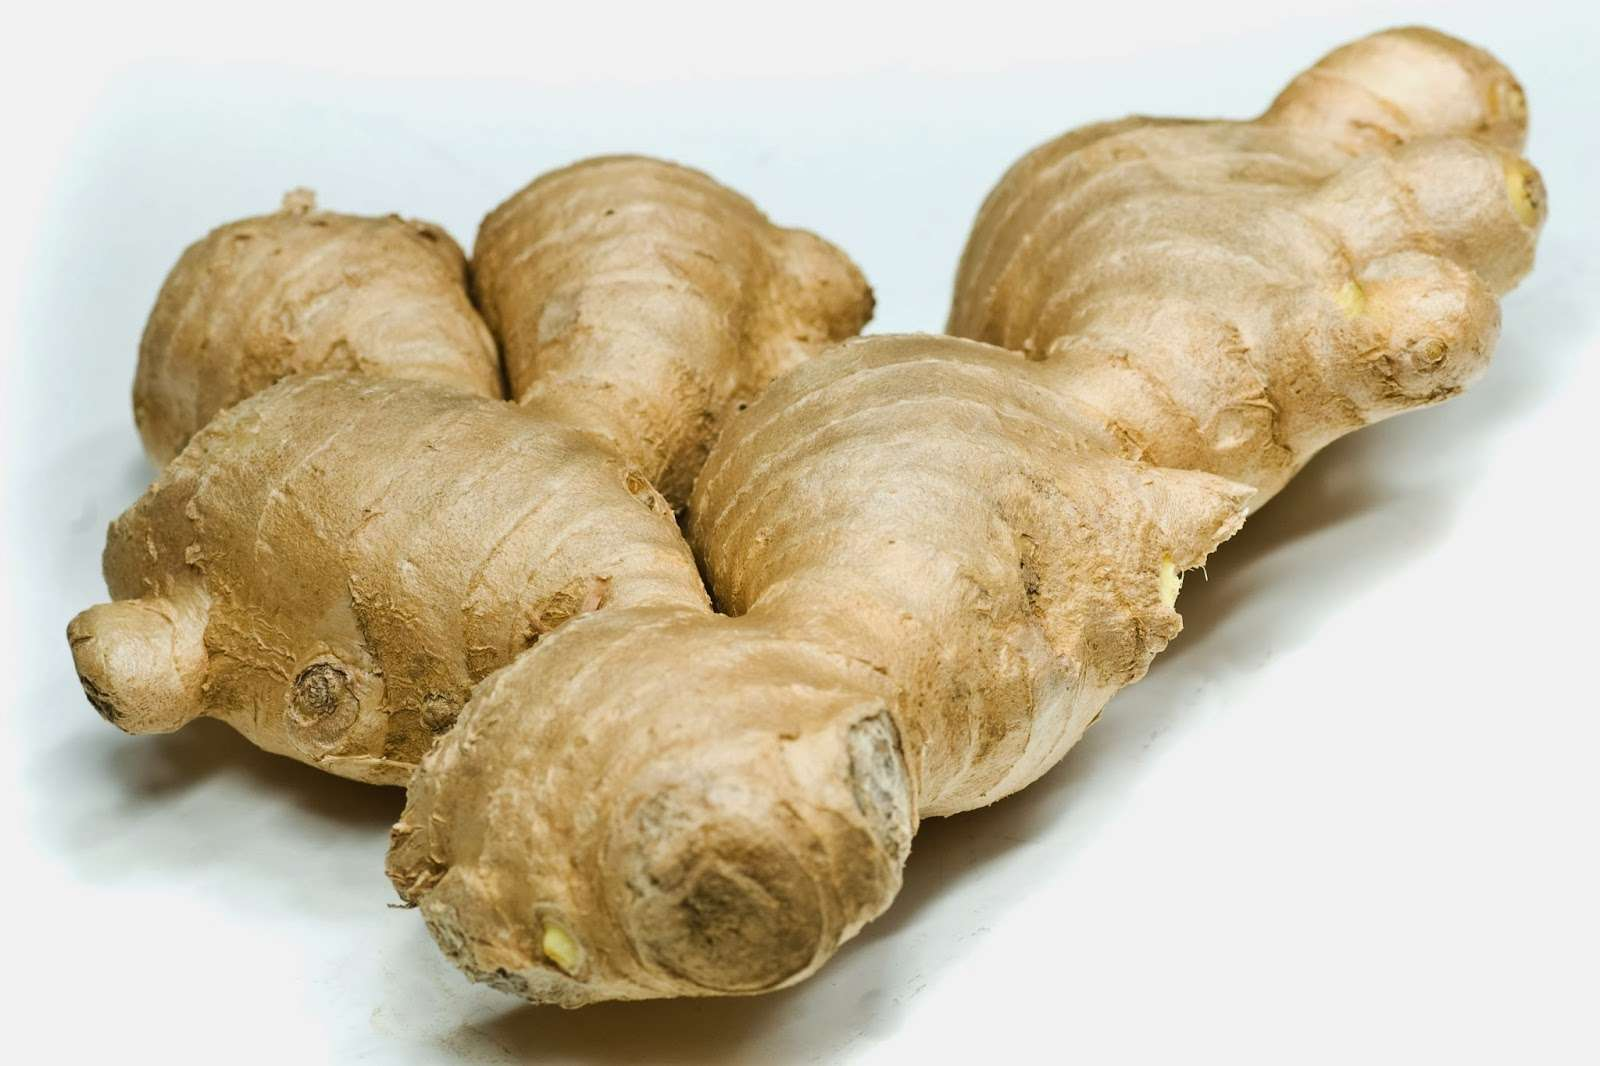 Agriculture Ministry Issues Green Ginger Warning